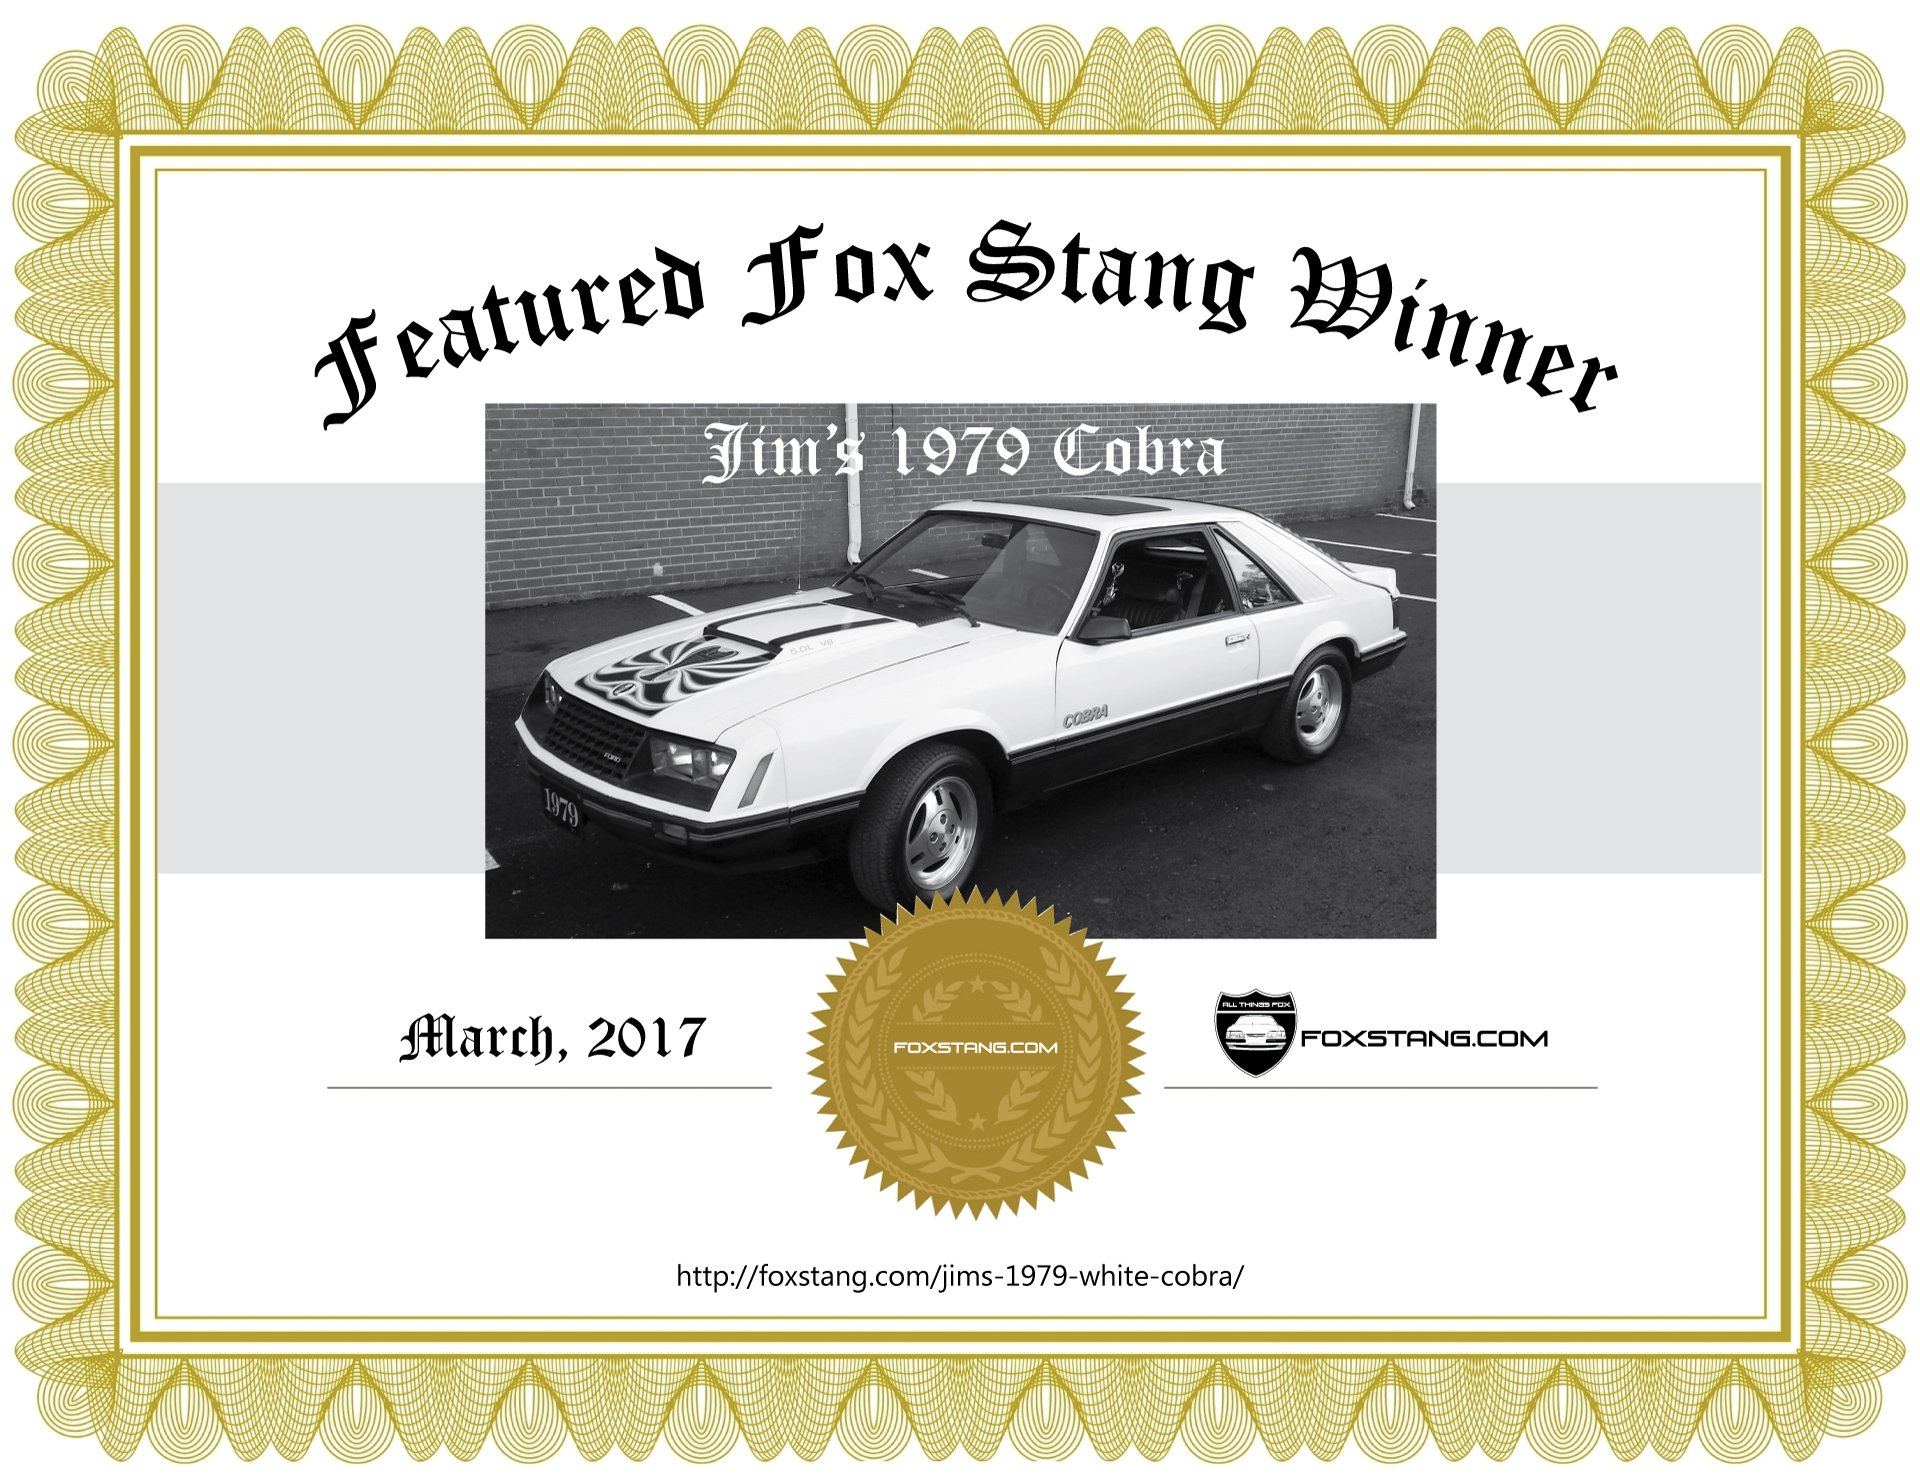 Featured Fox Winner